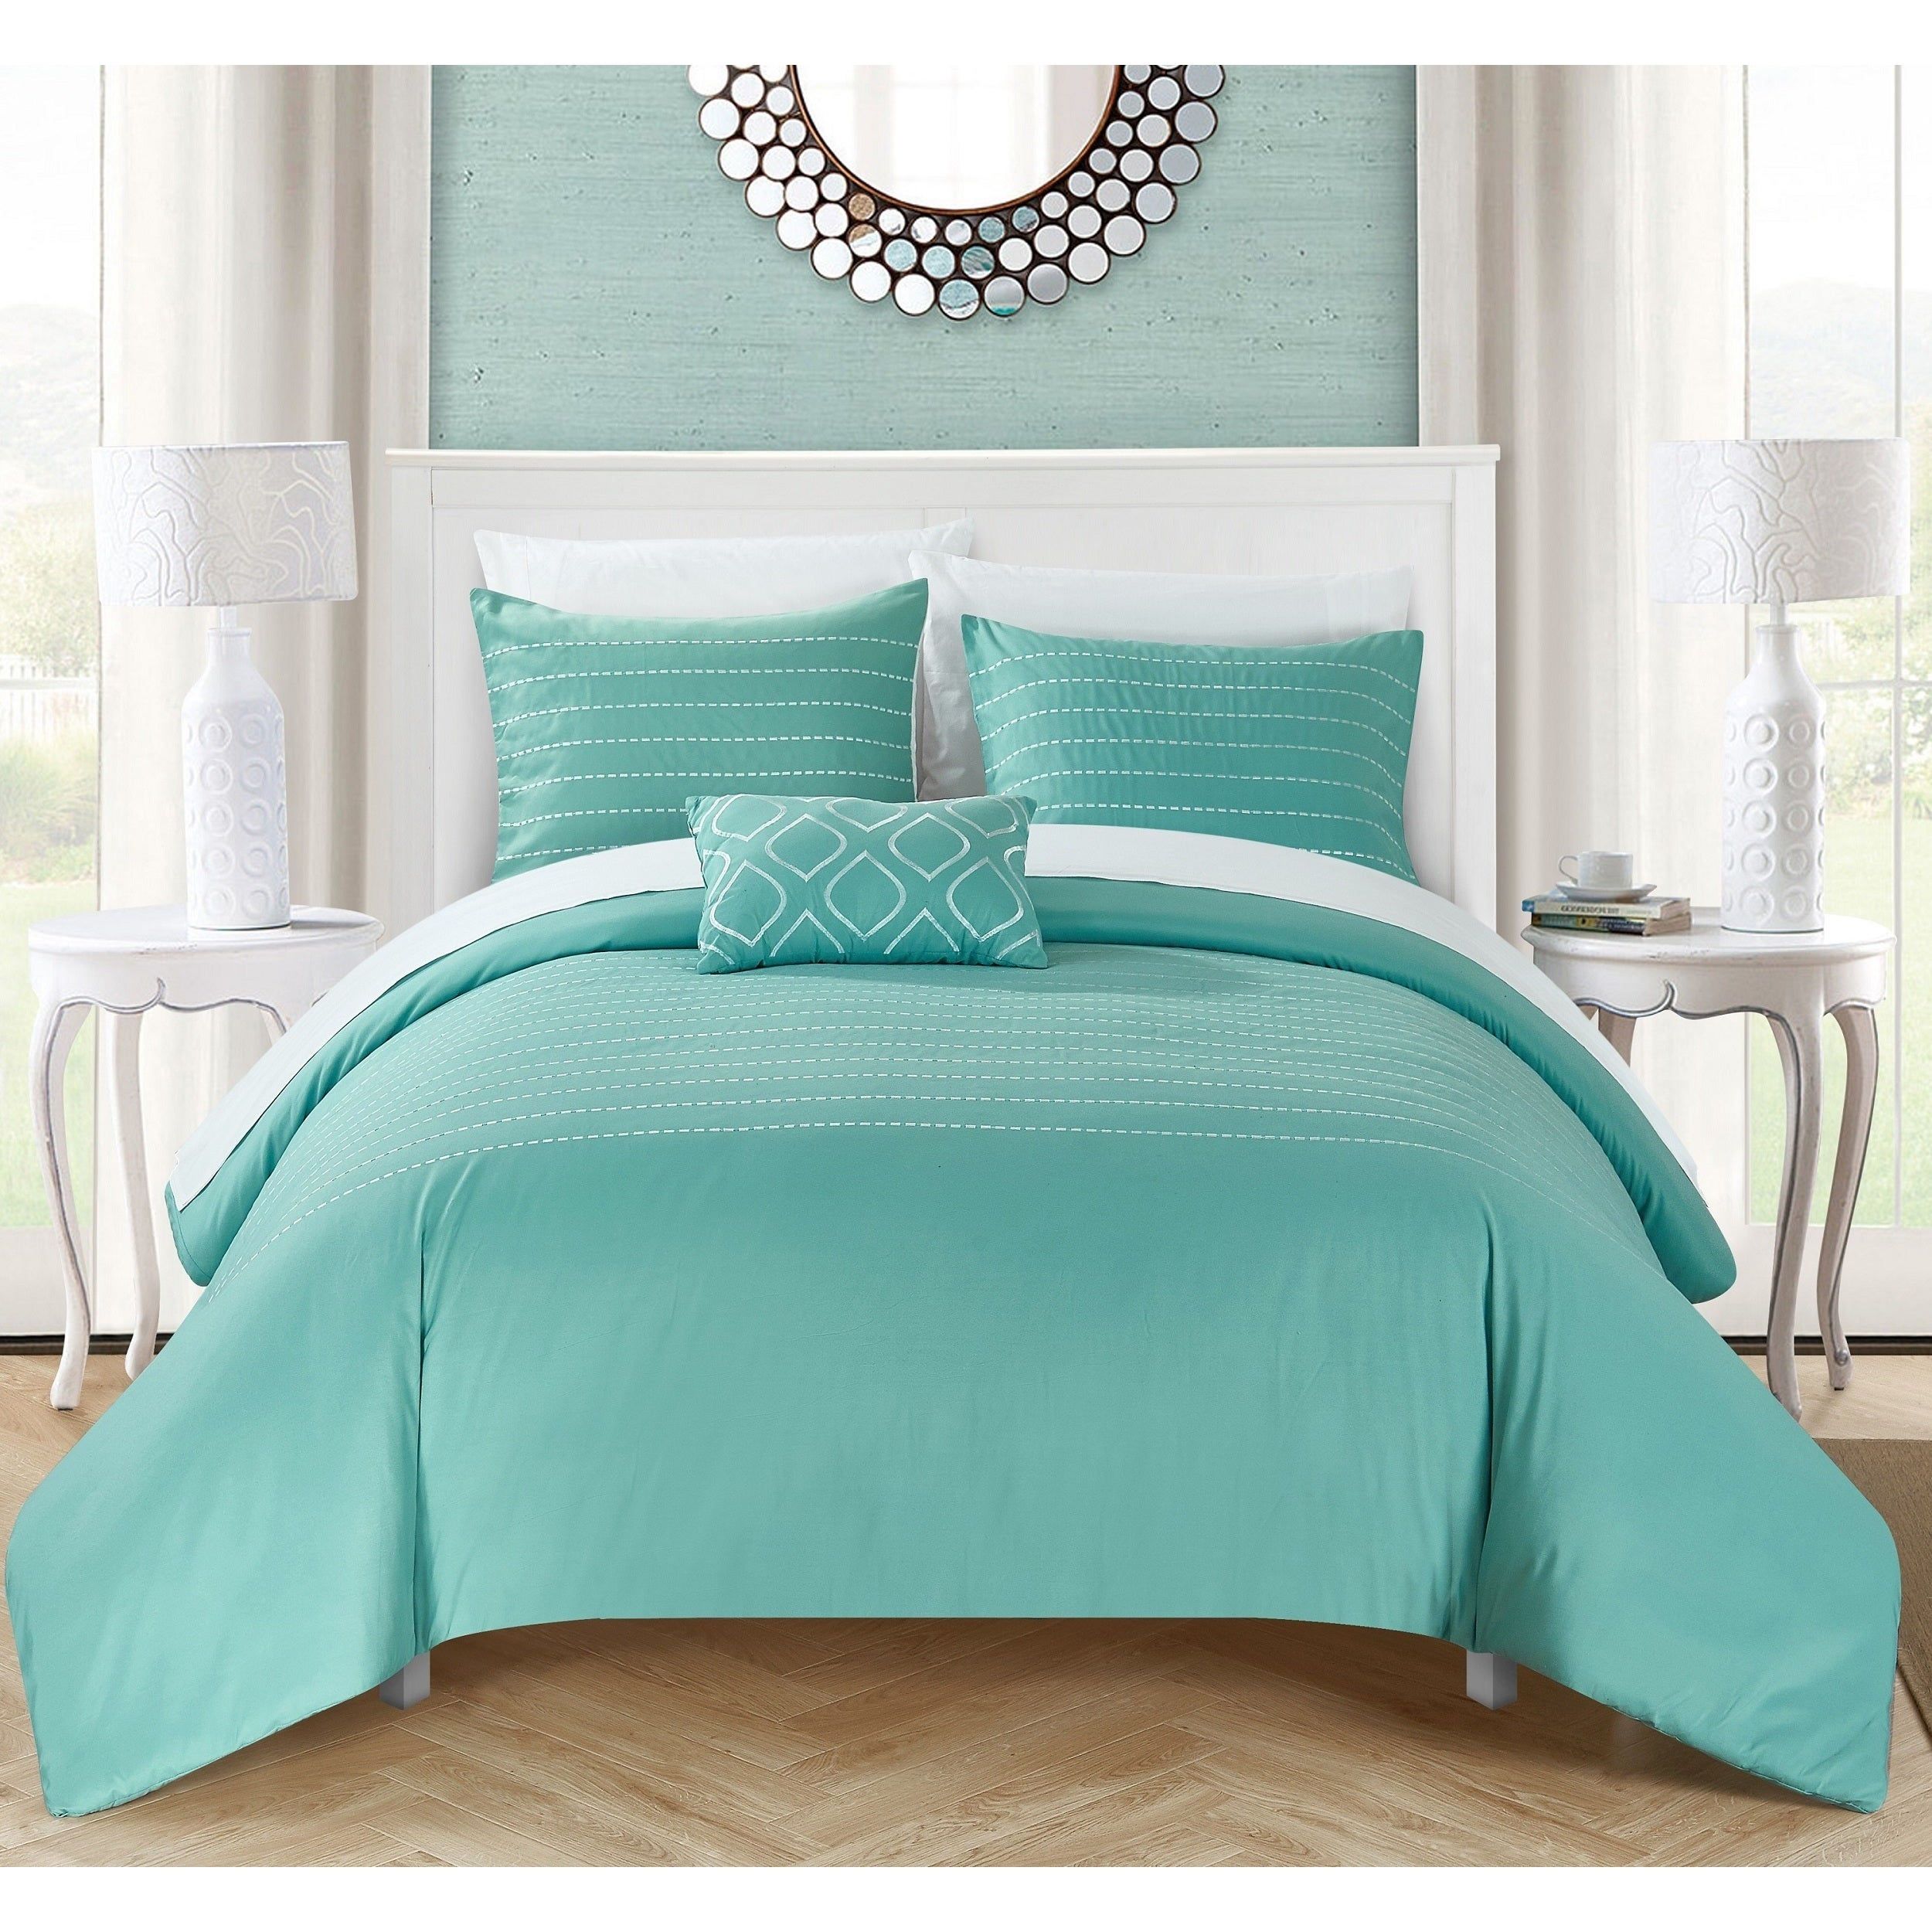 Cot In A Box Morocco Turquoise: Shop Chic Home Kingston 8-Piece Turquoise Bed In A Bag